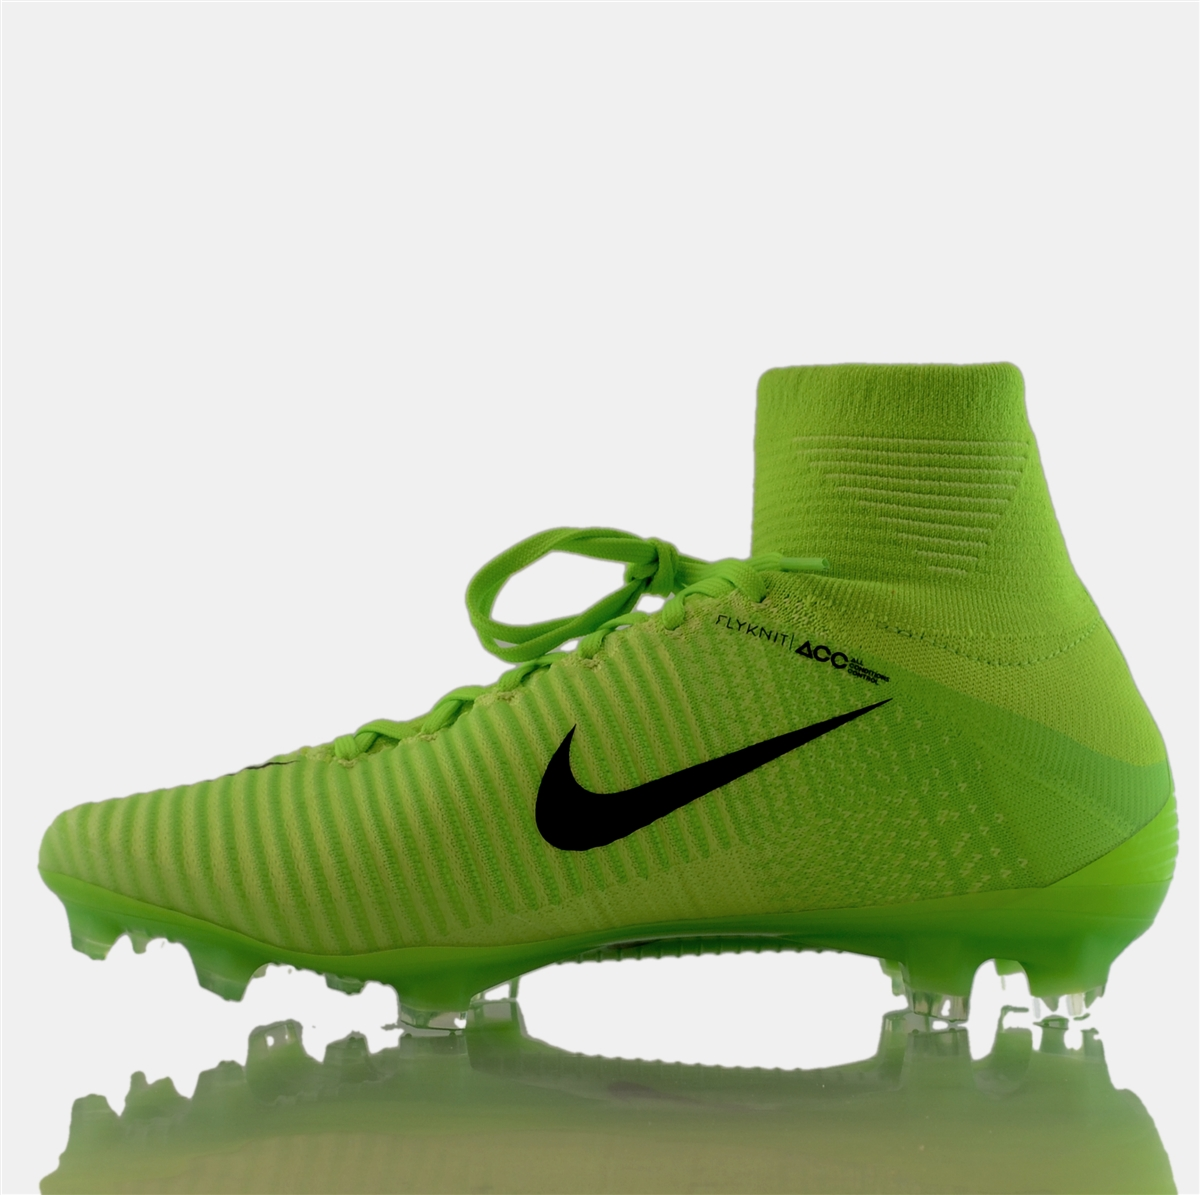 sale retailer 7a0c6 c2c6e Nike Mercurial SuperFly V FG Soccer Cleats (Electric Green Black Ghost ...